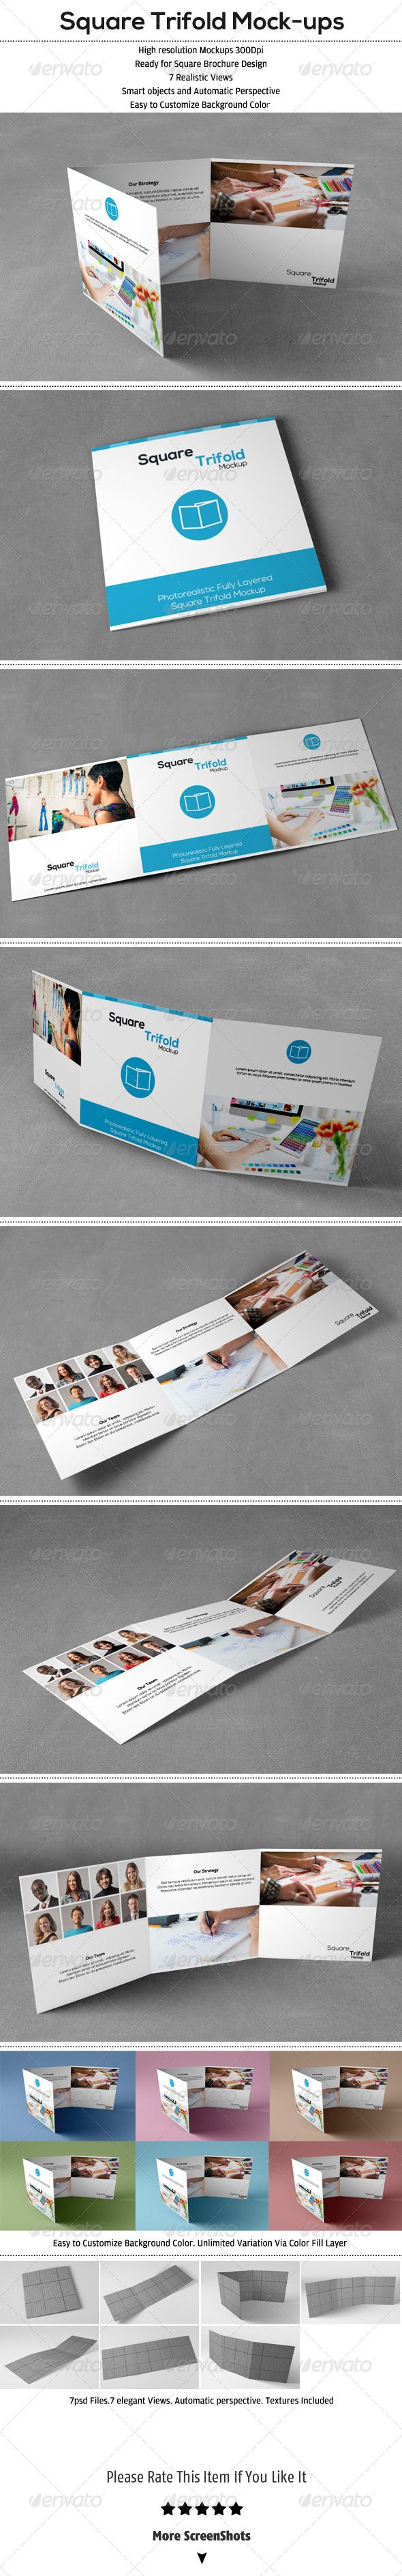 Square Trifold Mockup Download here: https://graphicriver.net/item/square-trifold-mockup/6354539?ref=KlitVogli